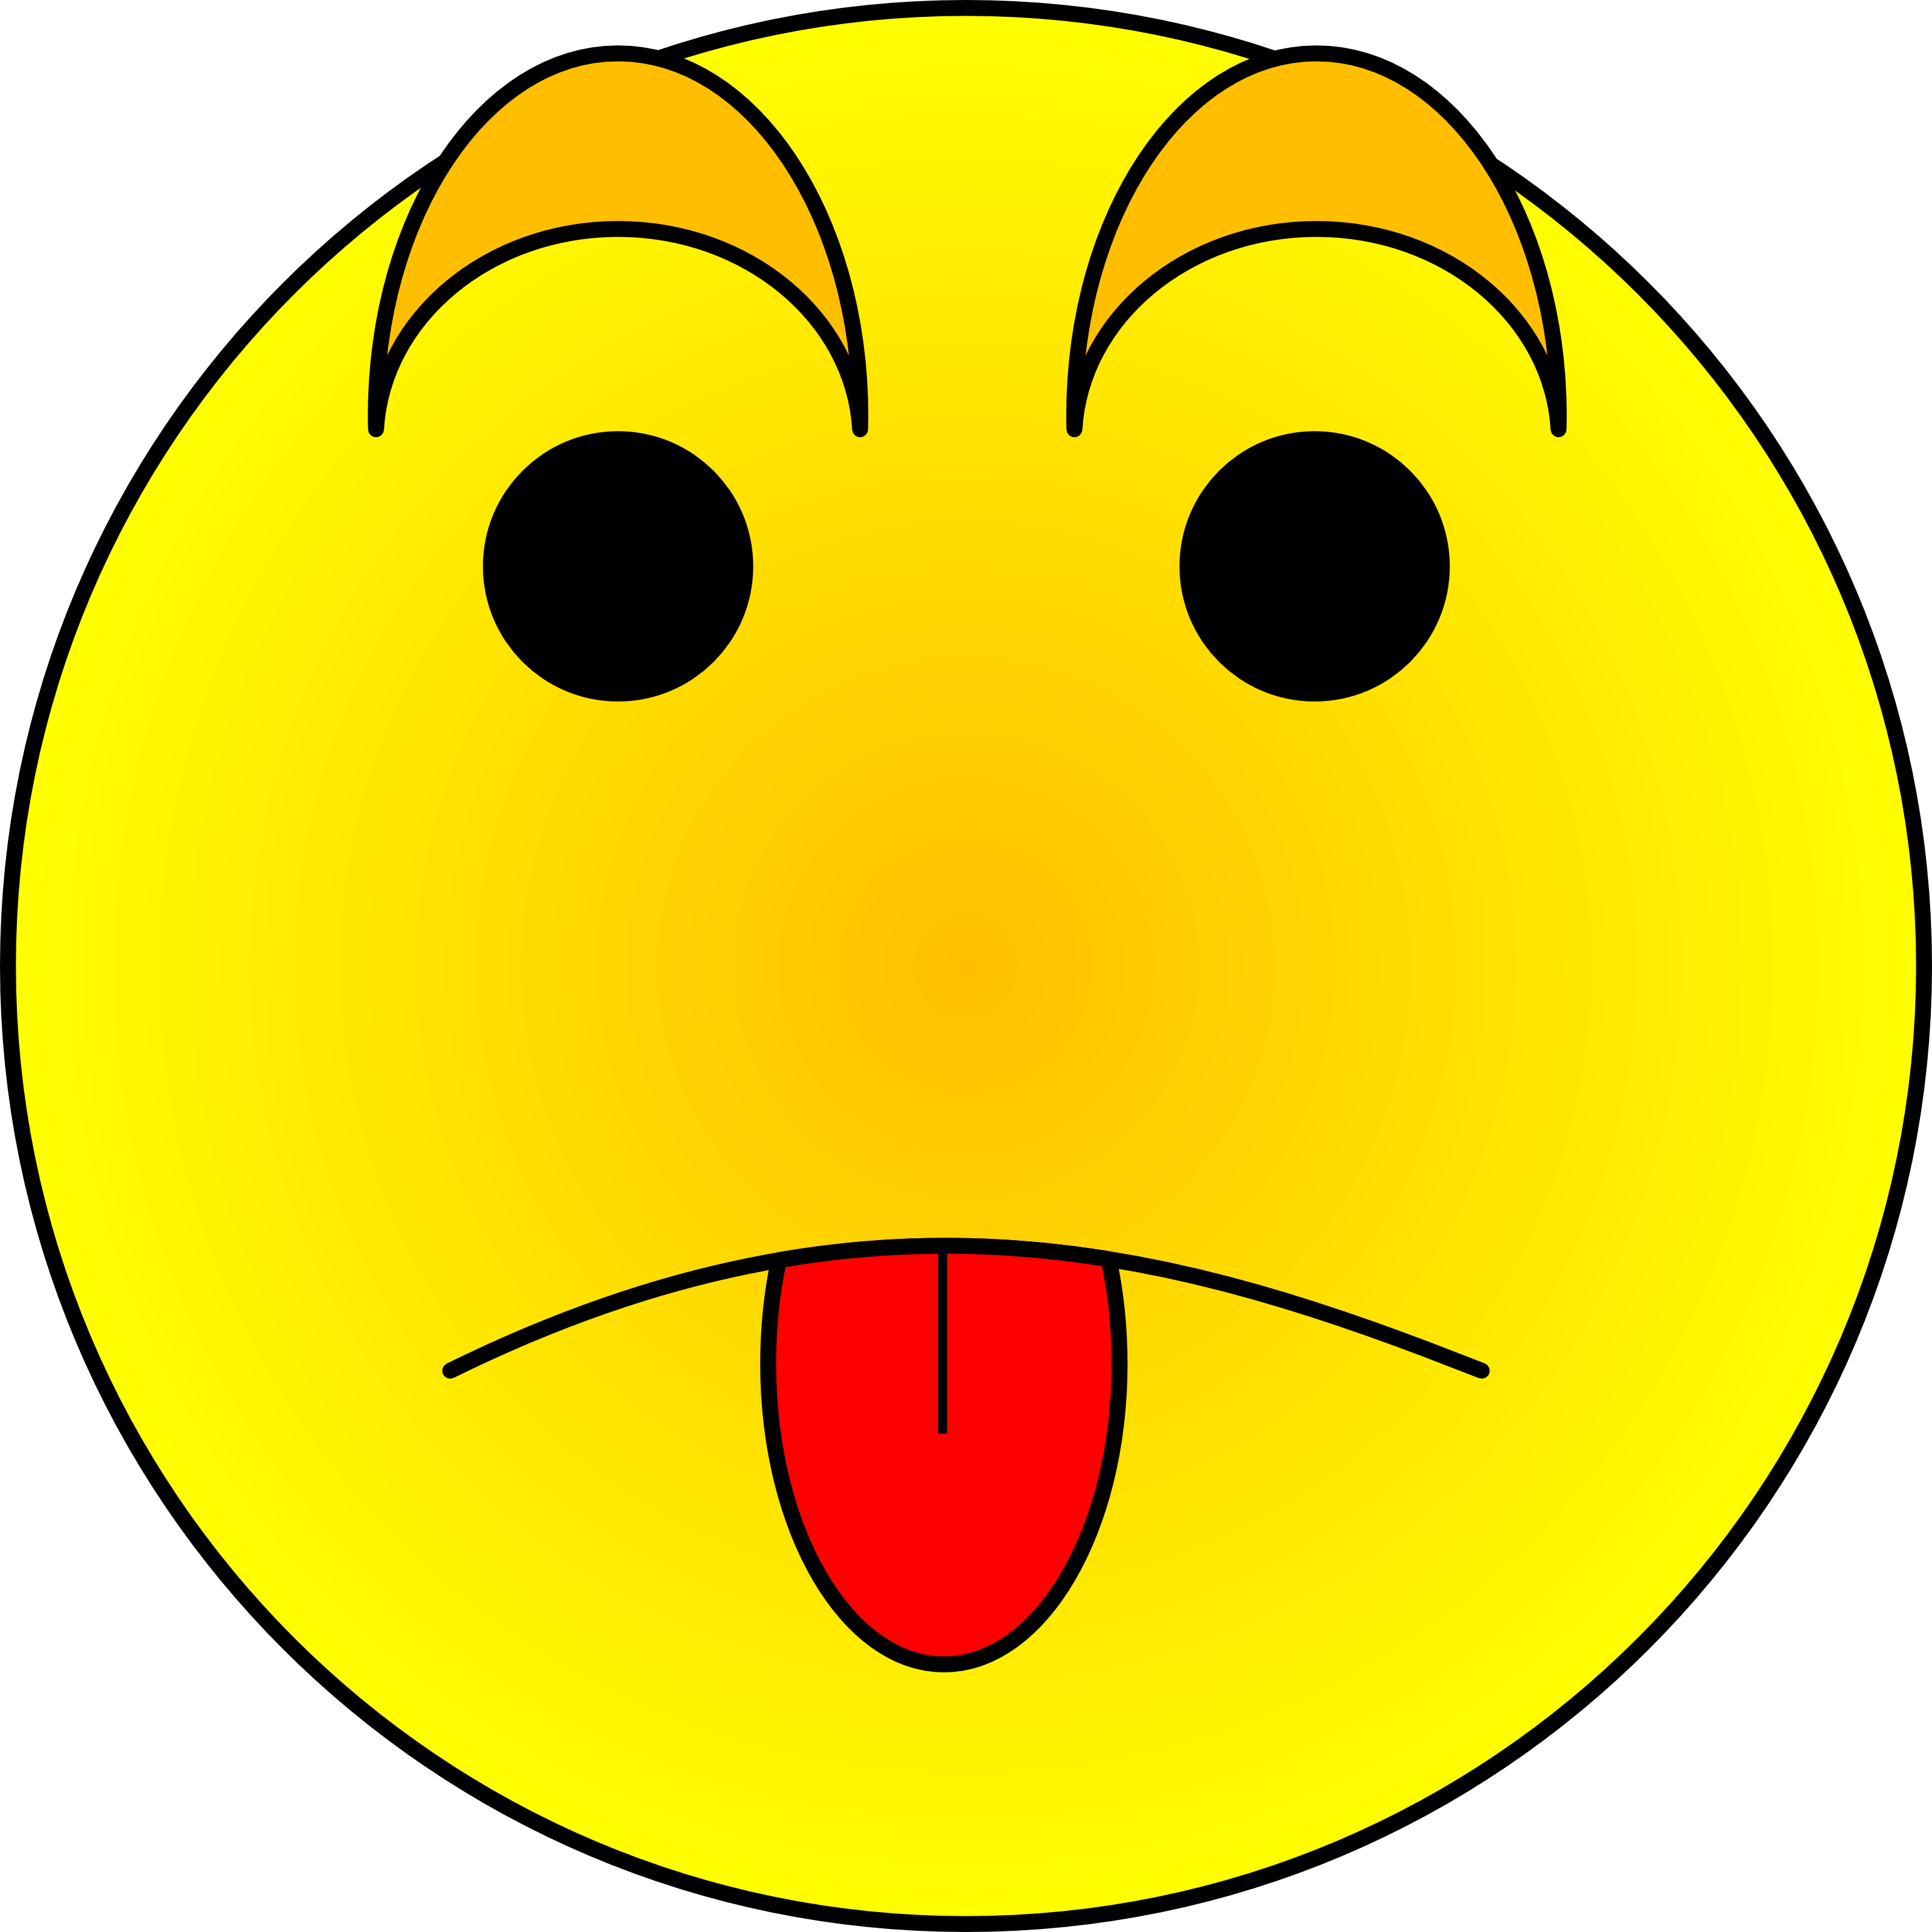 Images For Animated Laughter Clip Art - Laughter PNG HD